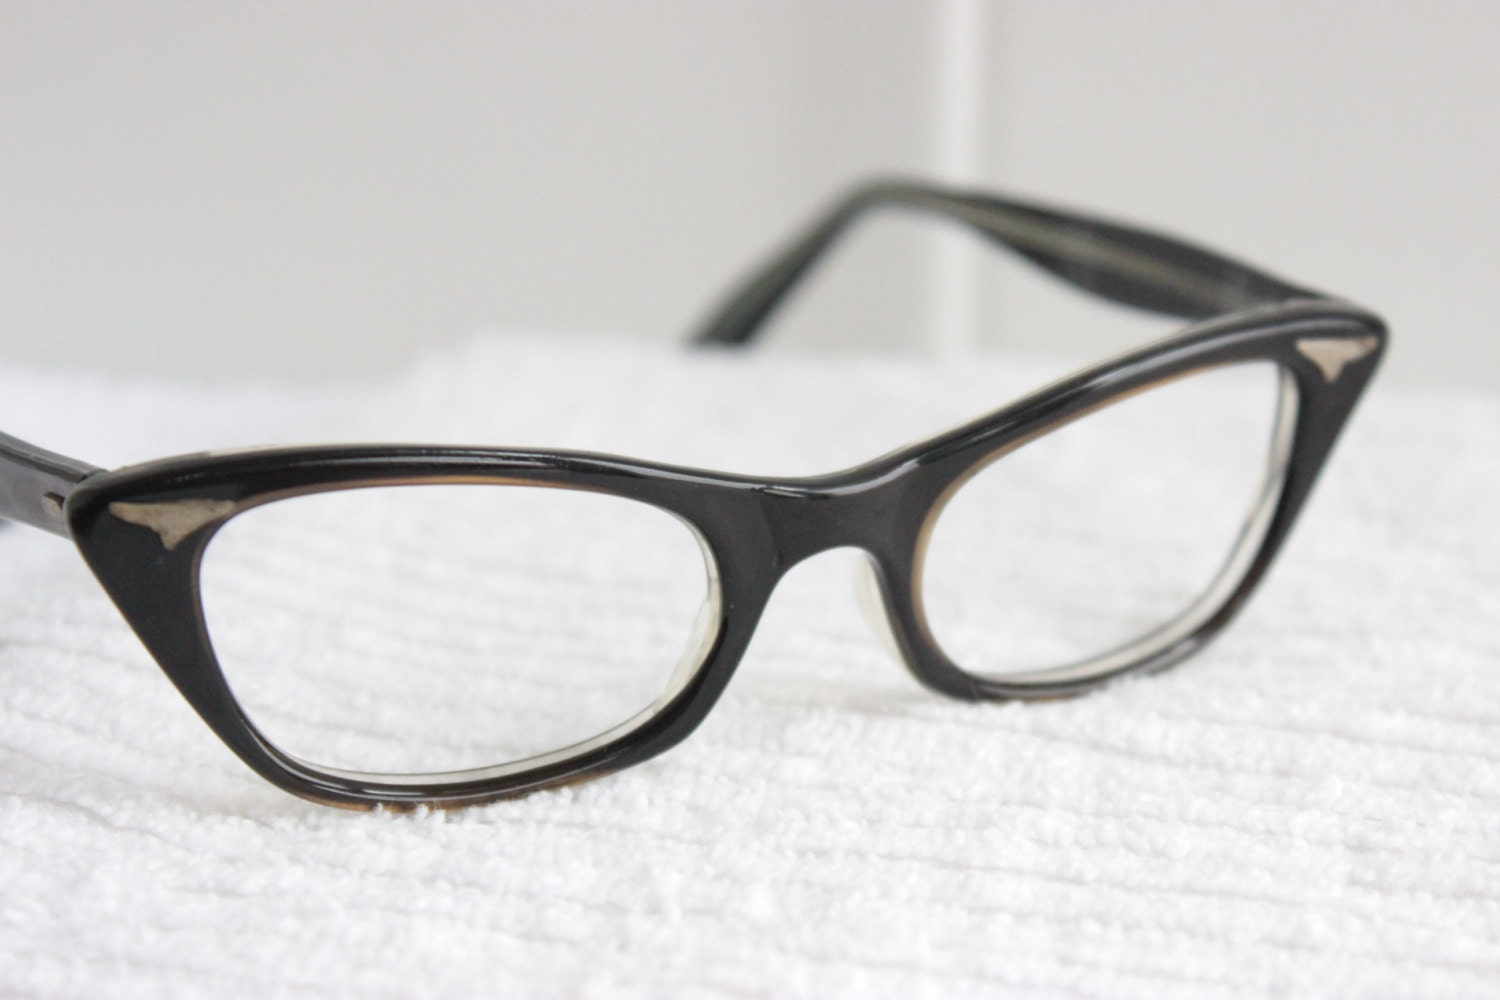 Small Frame Cateye Glasses : 50s Cat Eye Glasses 1960s Womens Eyeglasses Brown by ...